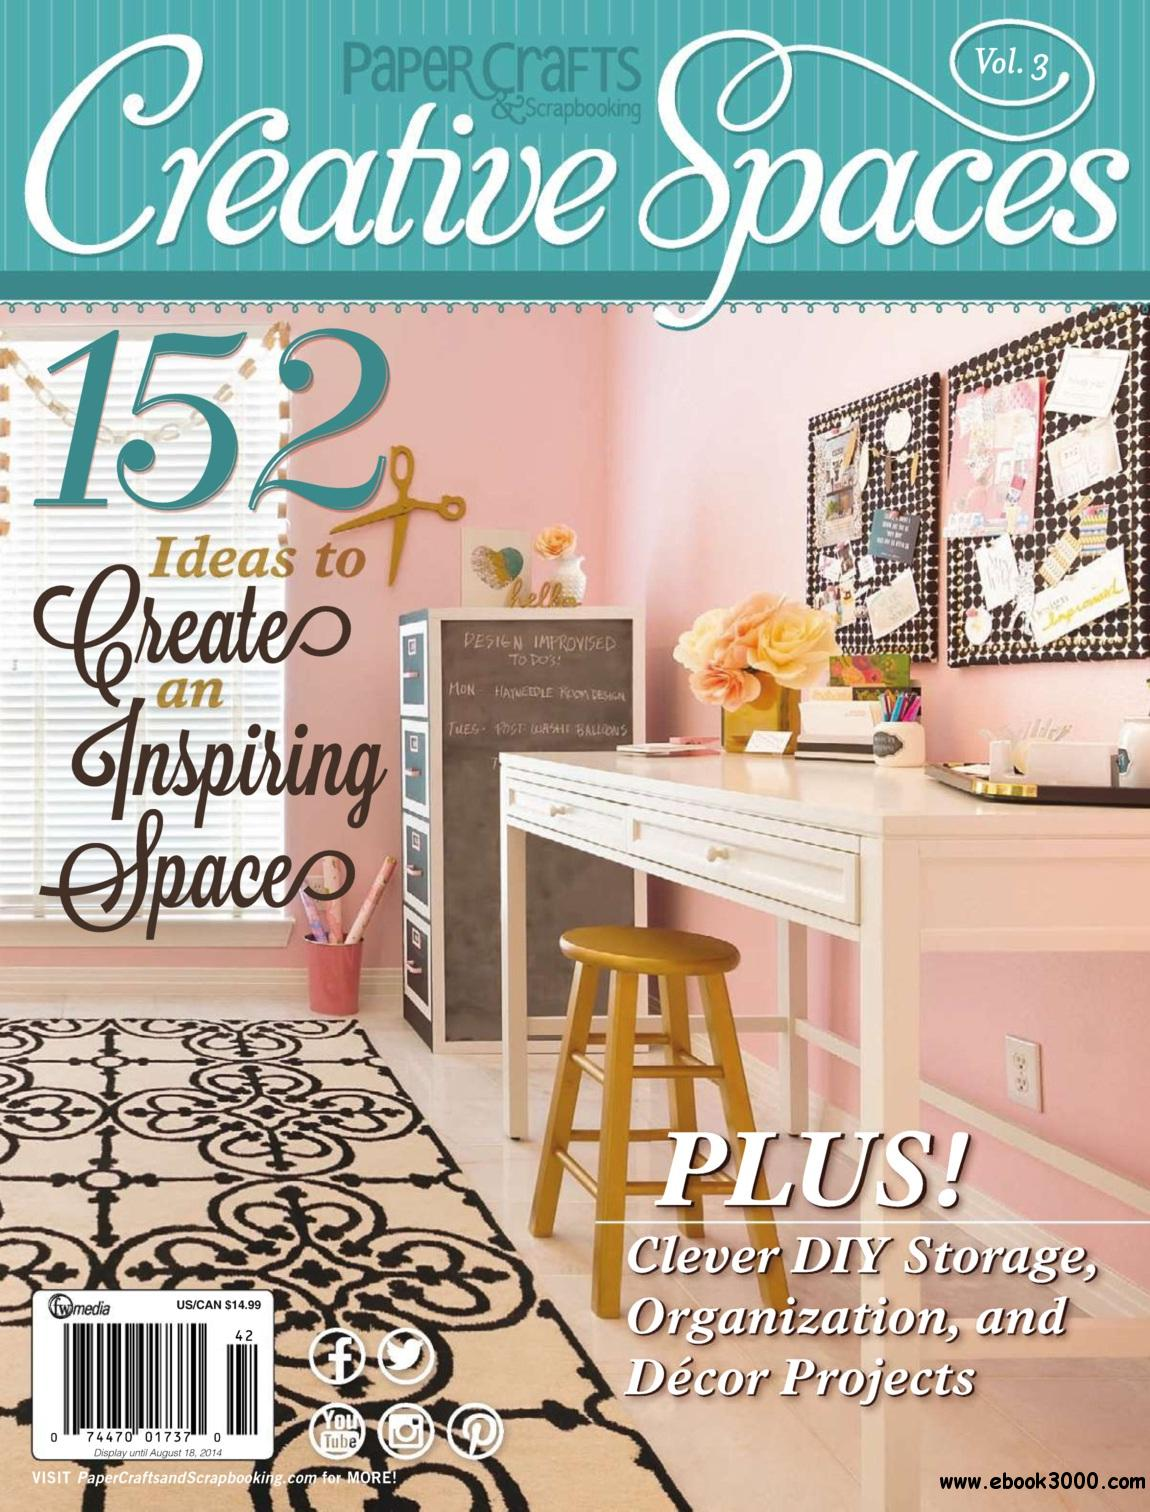 Creative Spaces Vol.3 2014 free download